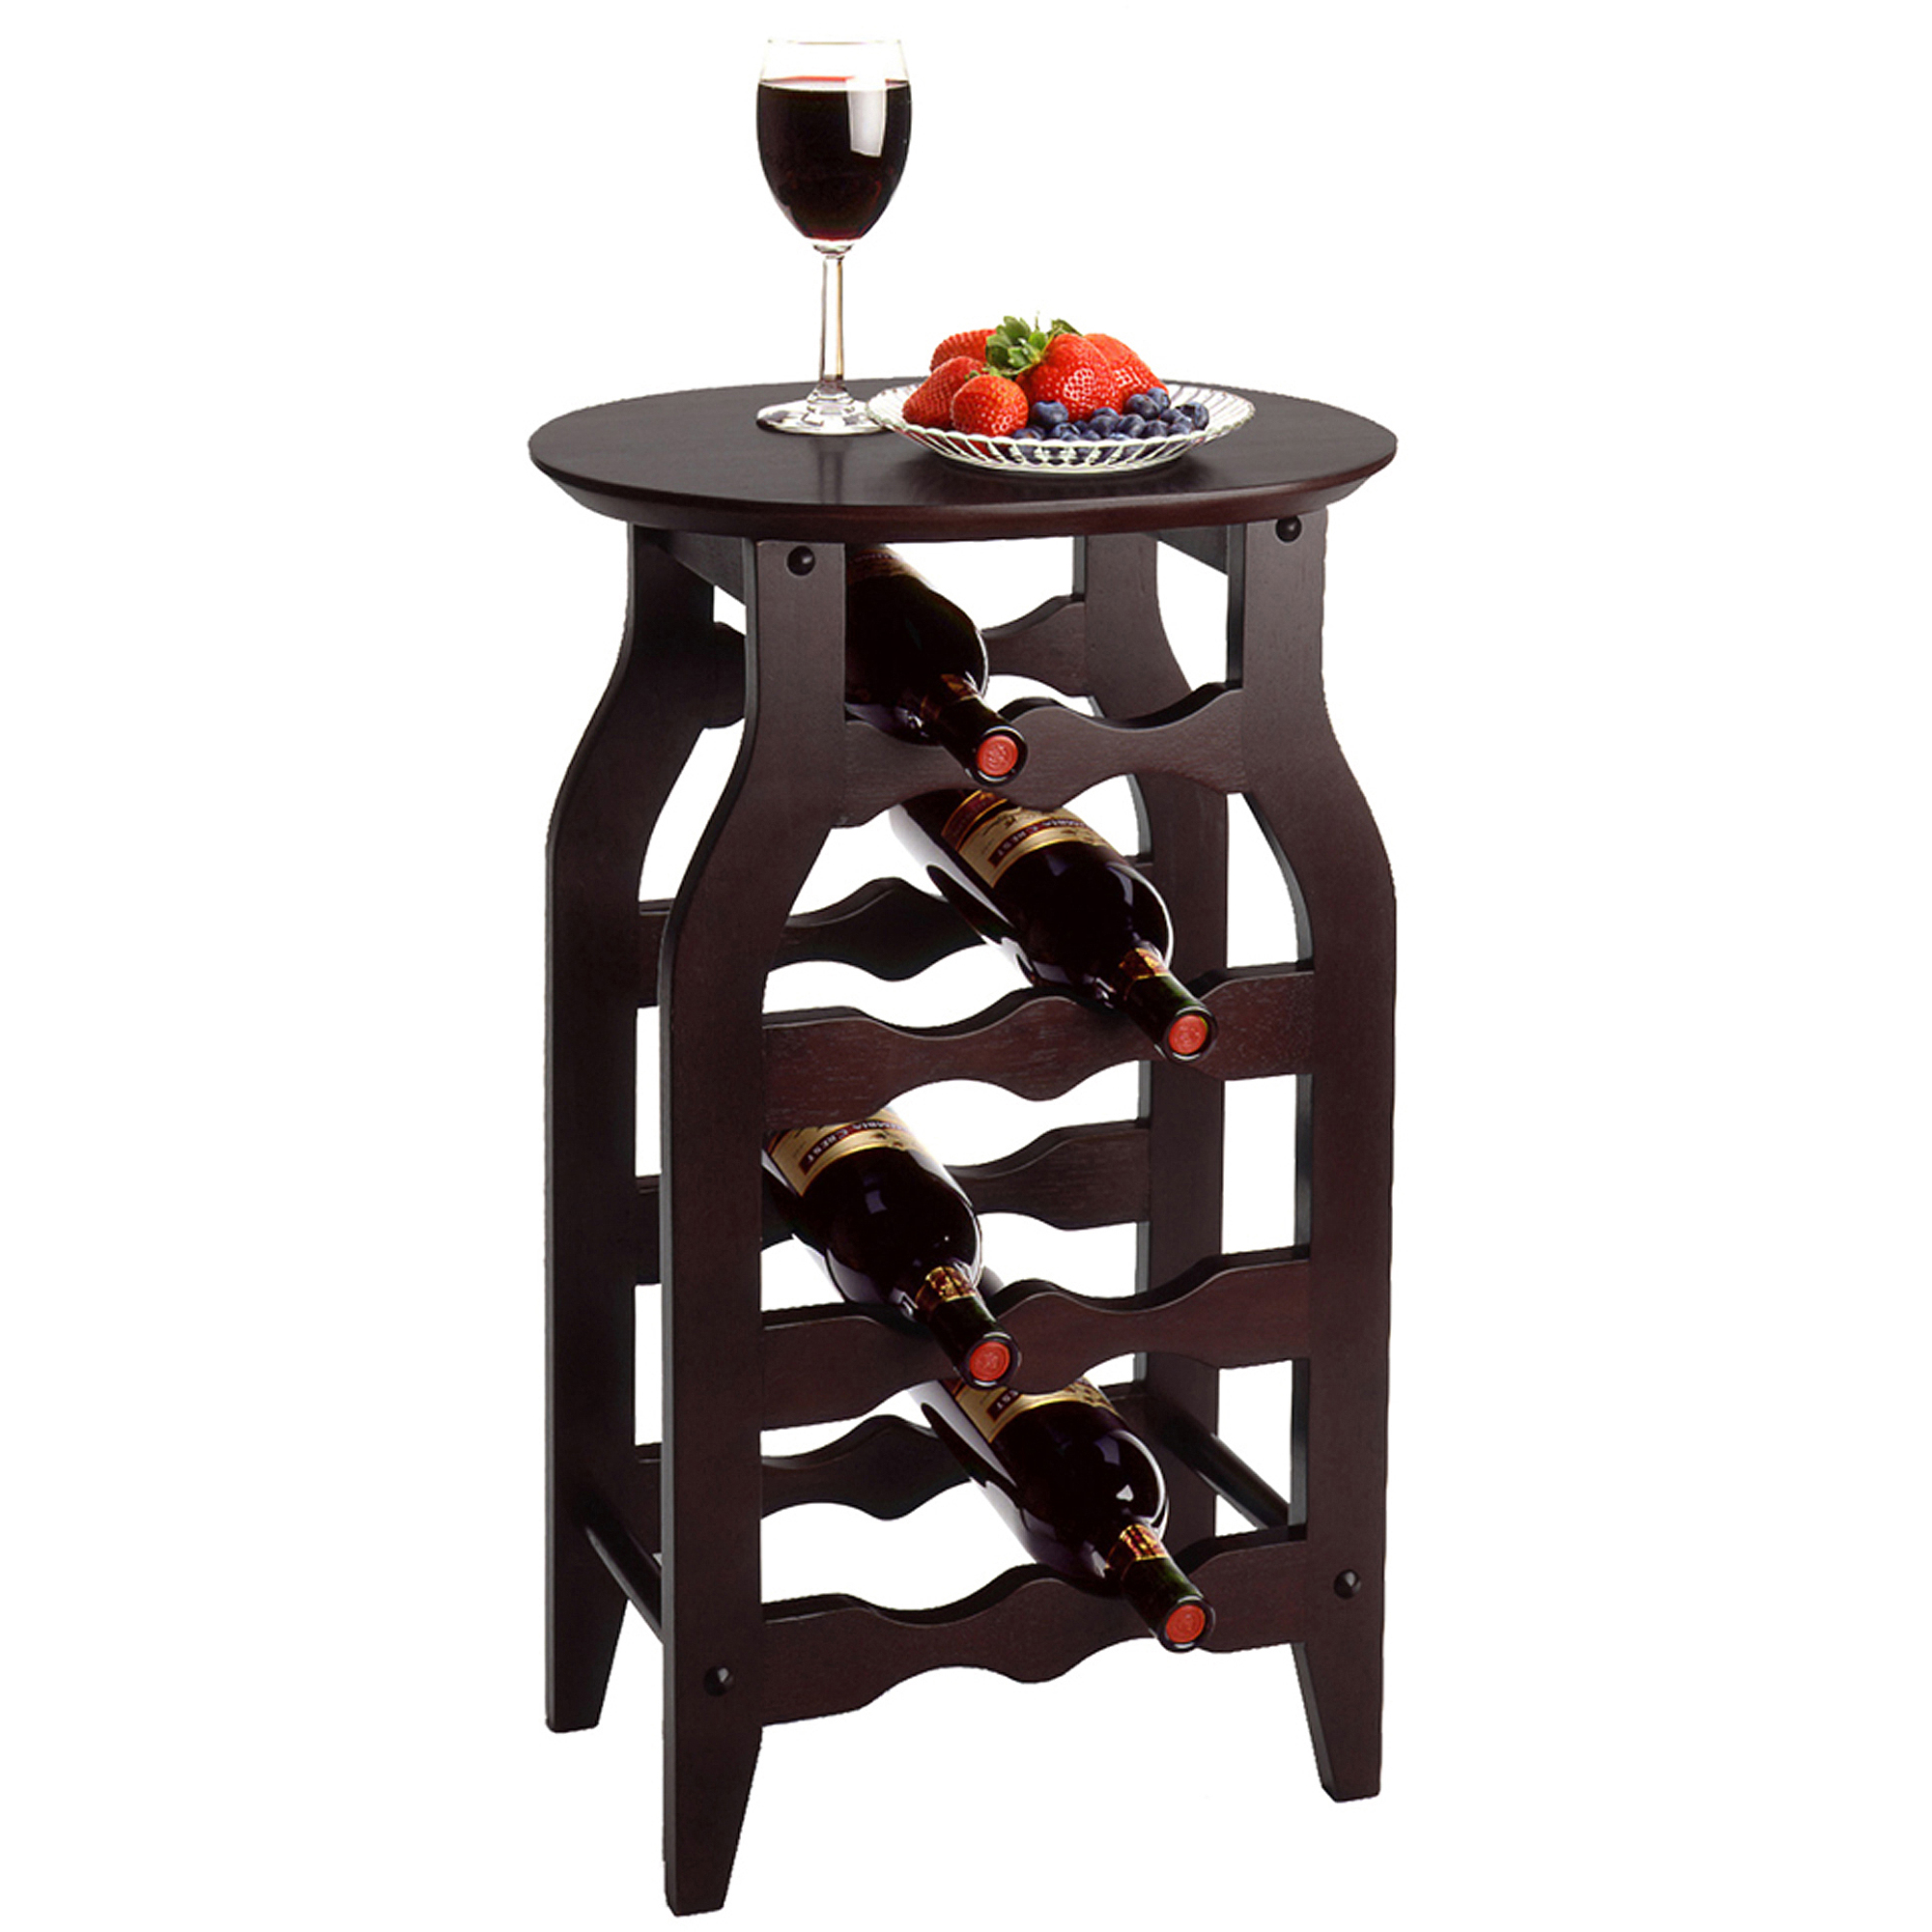 your most adams for own wine racks rack home decor weed eater ideas wonderful design of luxury in with jk